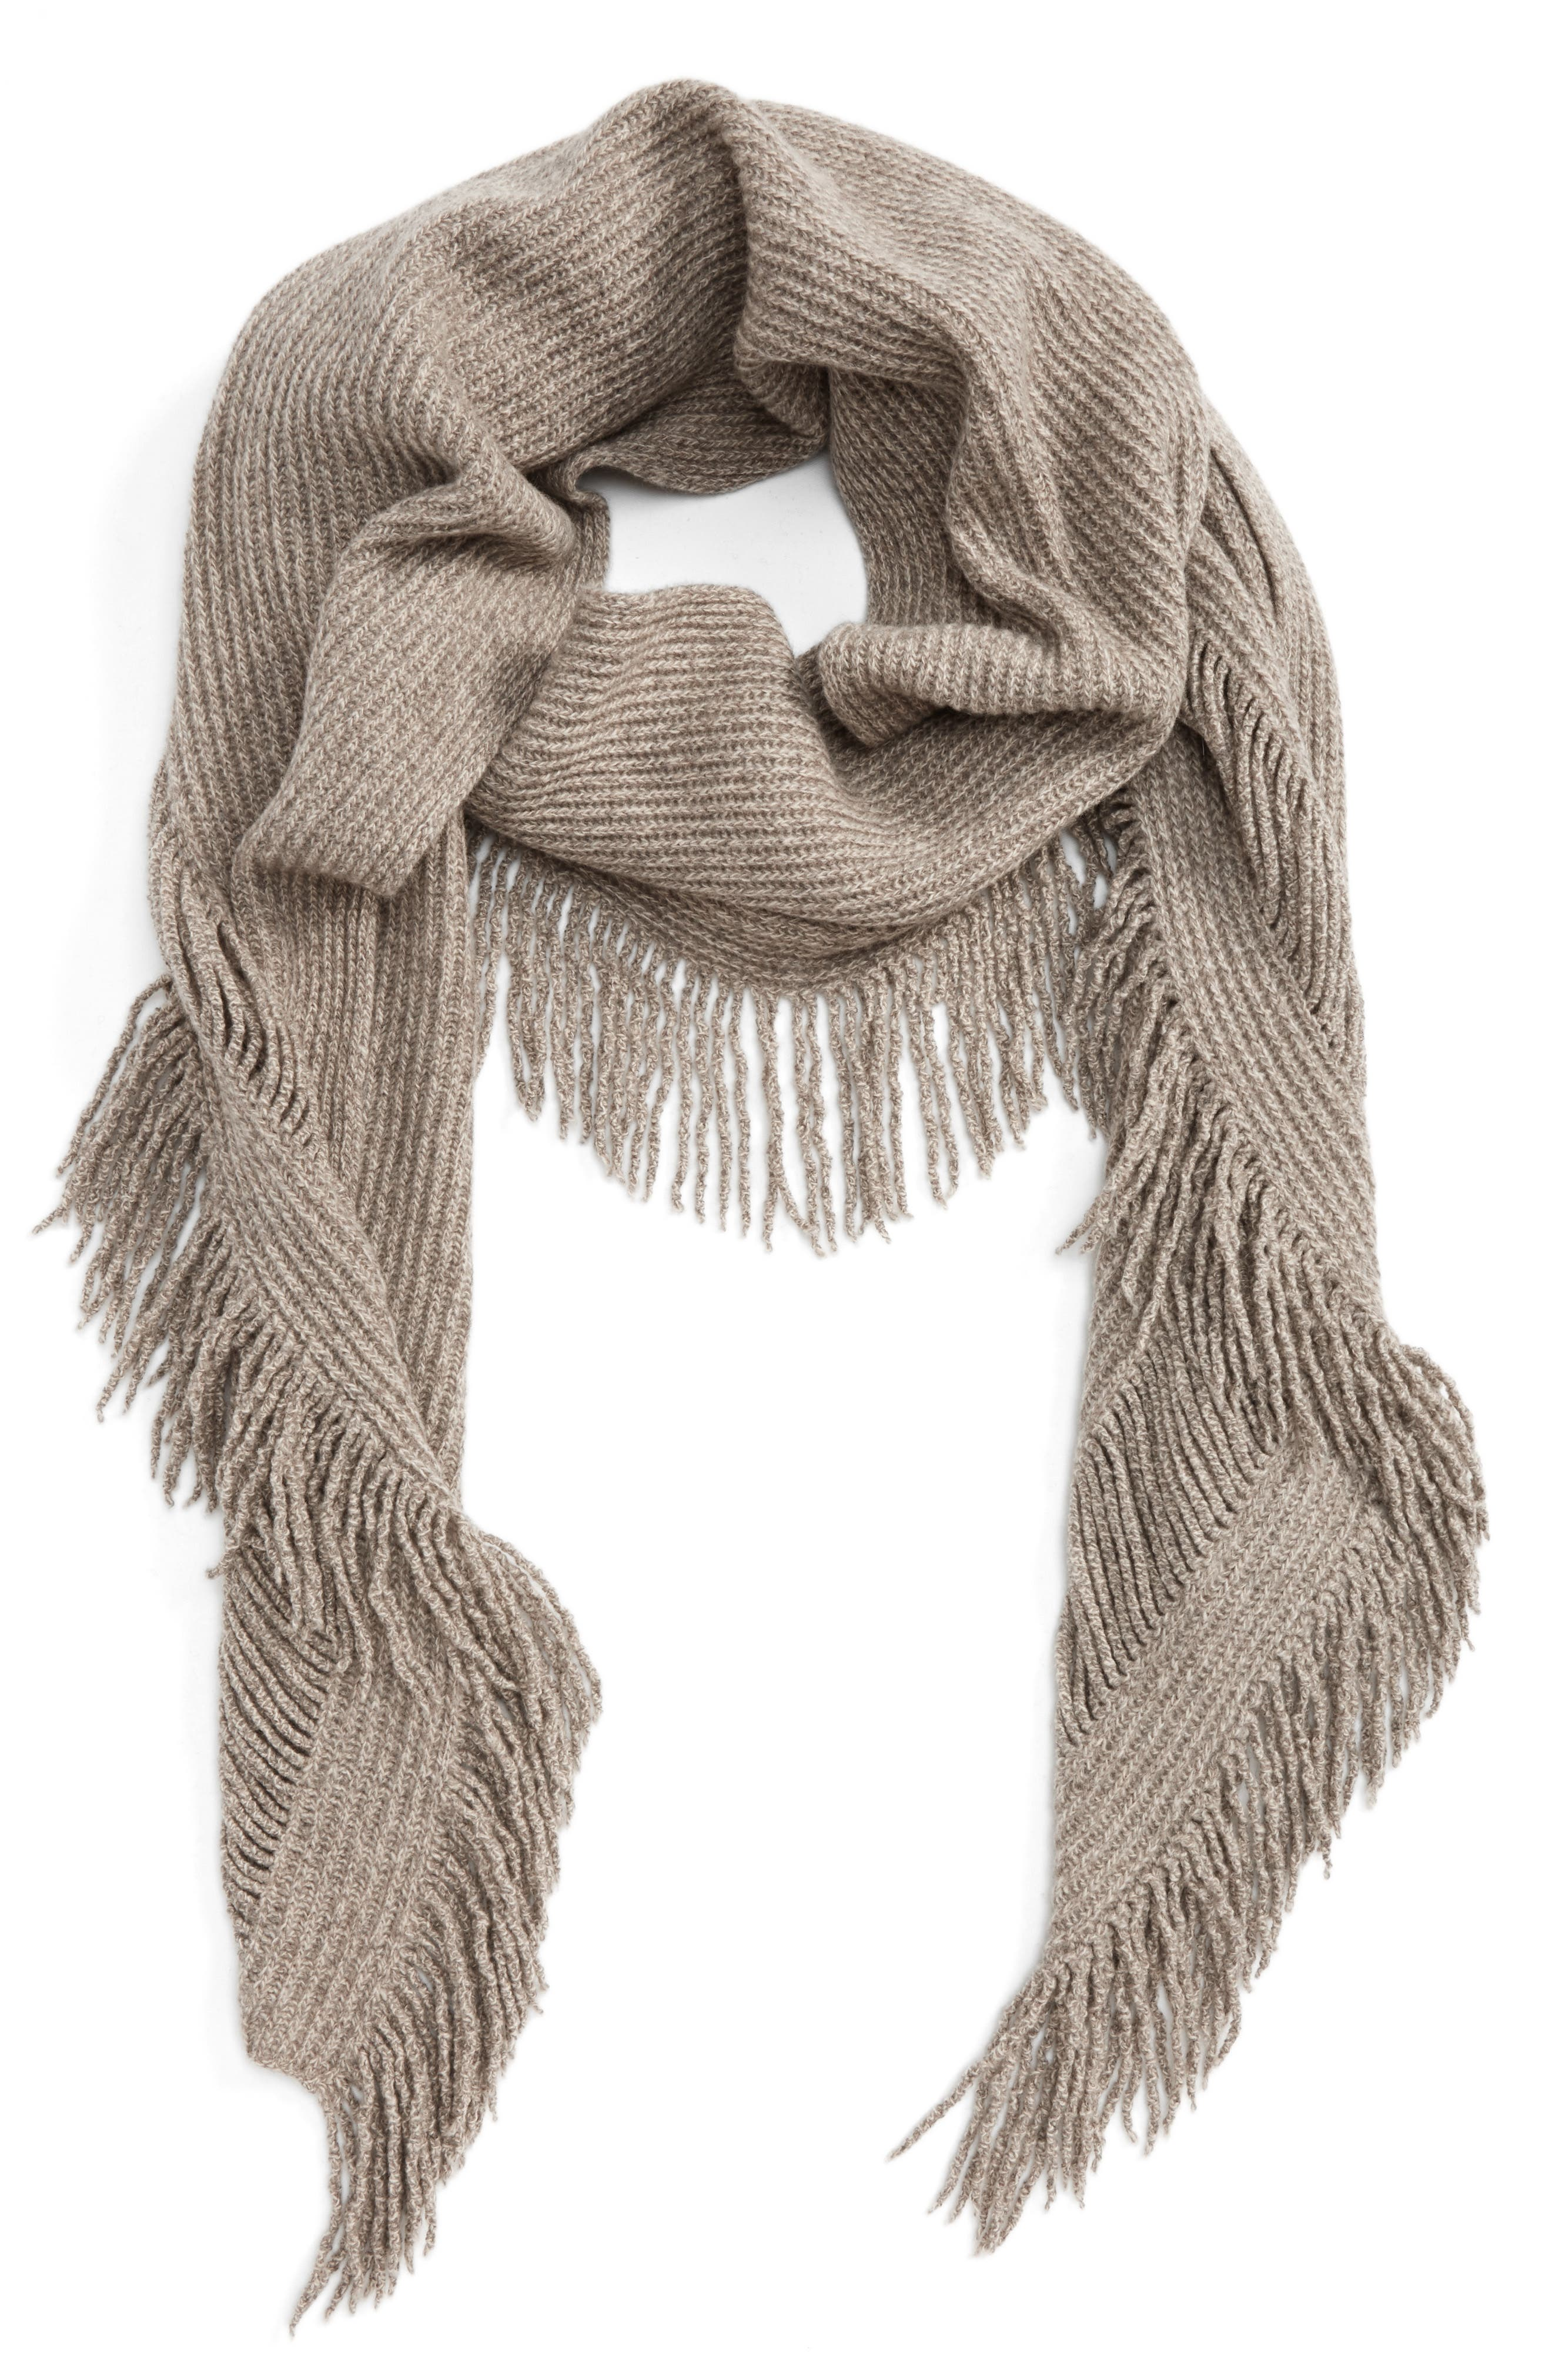 Fringe Cashmere & Wool Scarf,                             Main thumbnail 1, color,                             250